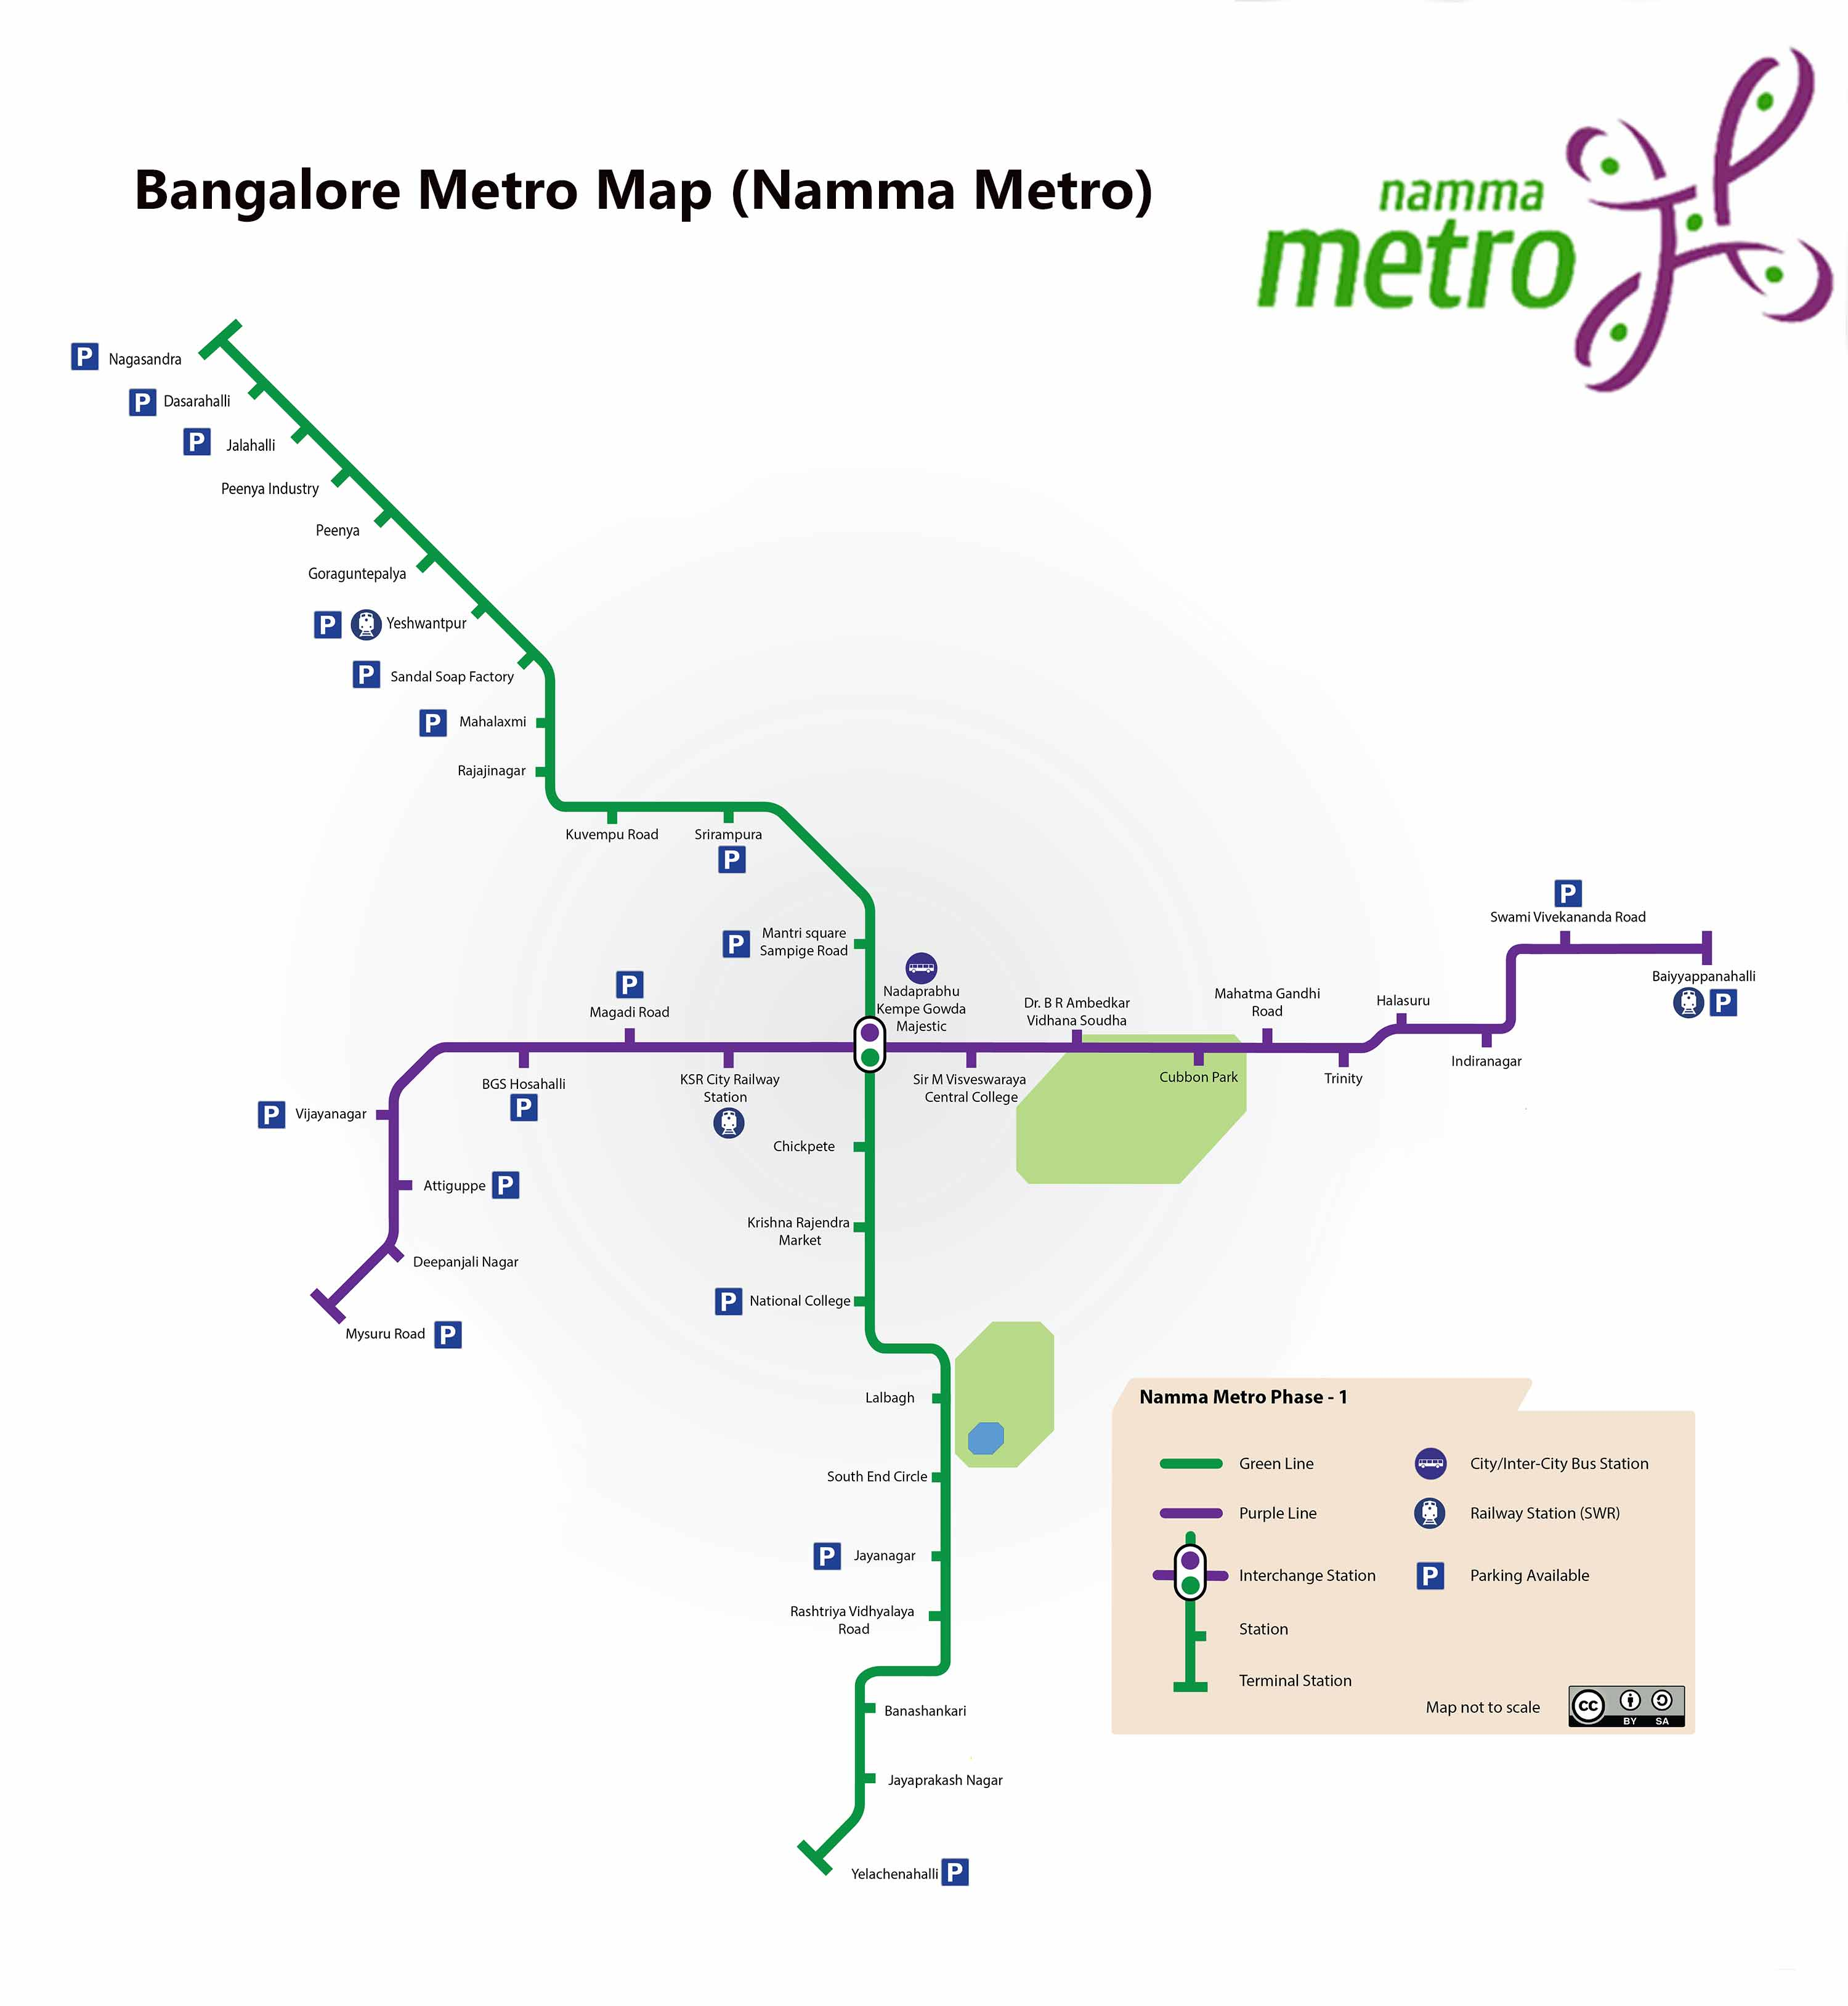 Bangalore Metro Green Line Route Map Timing Nearby Attractions